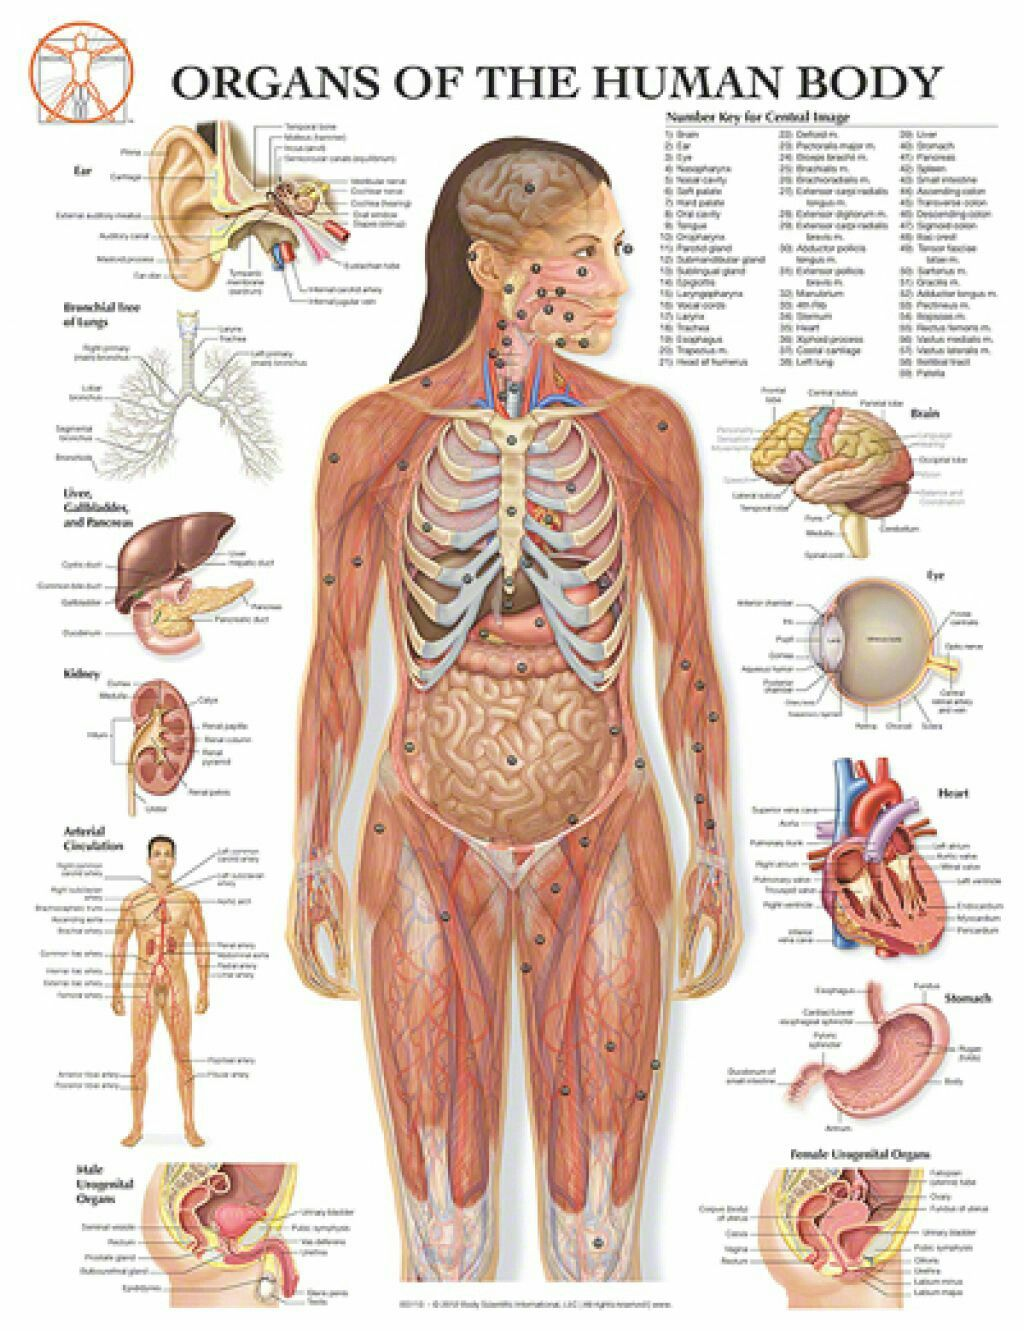 Pin de Tignanakpir Rita en Anatomy and physiology | Pinterest | Anatomía